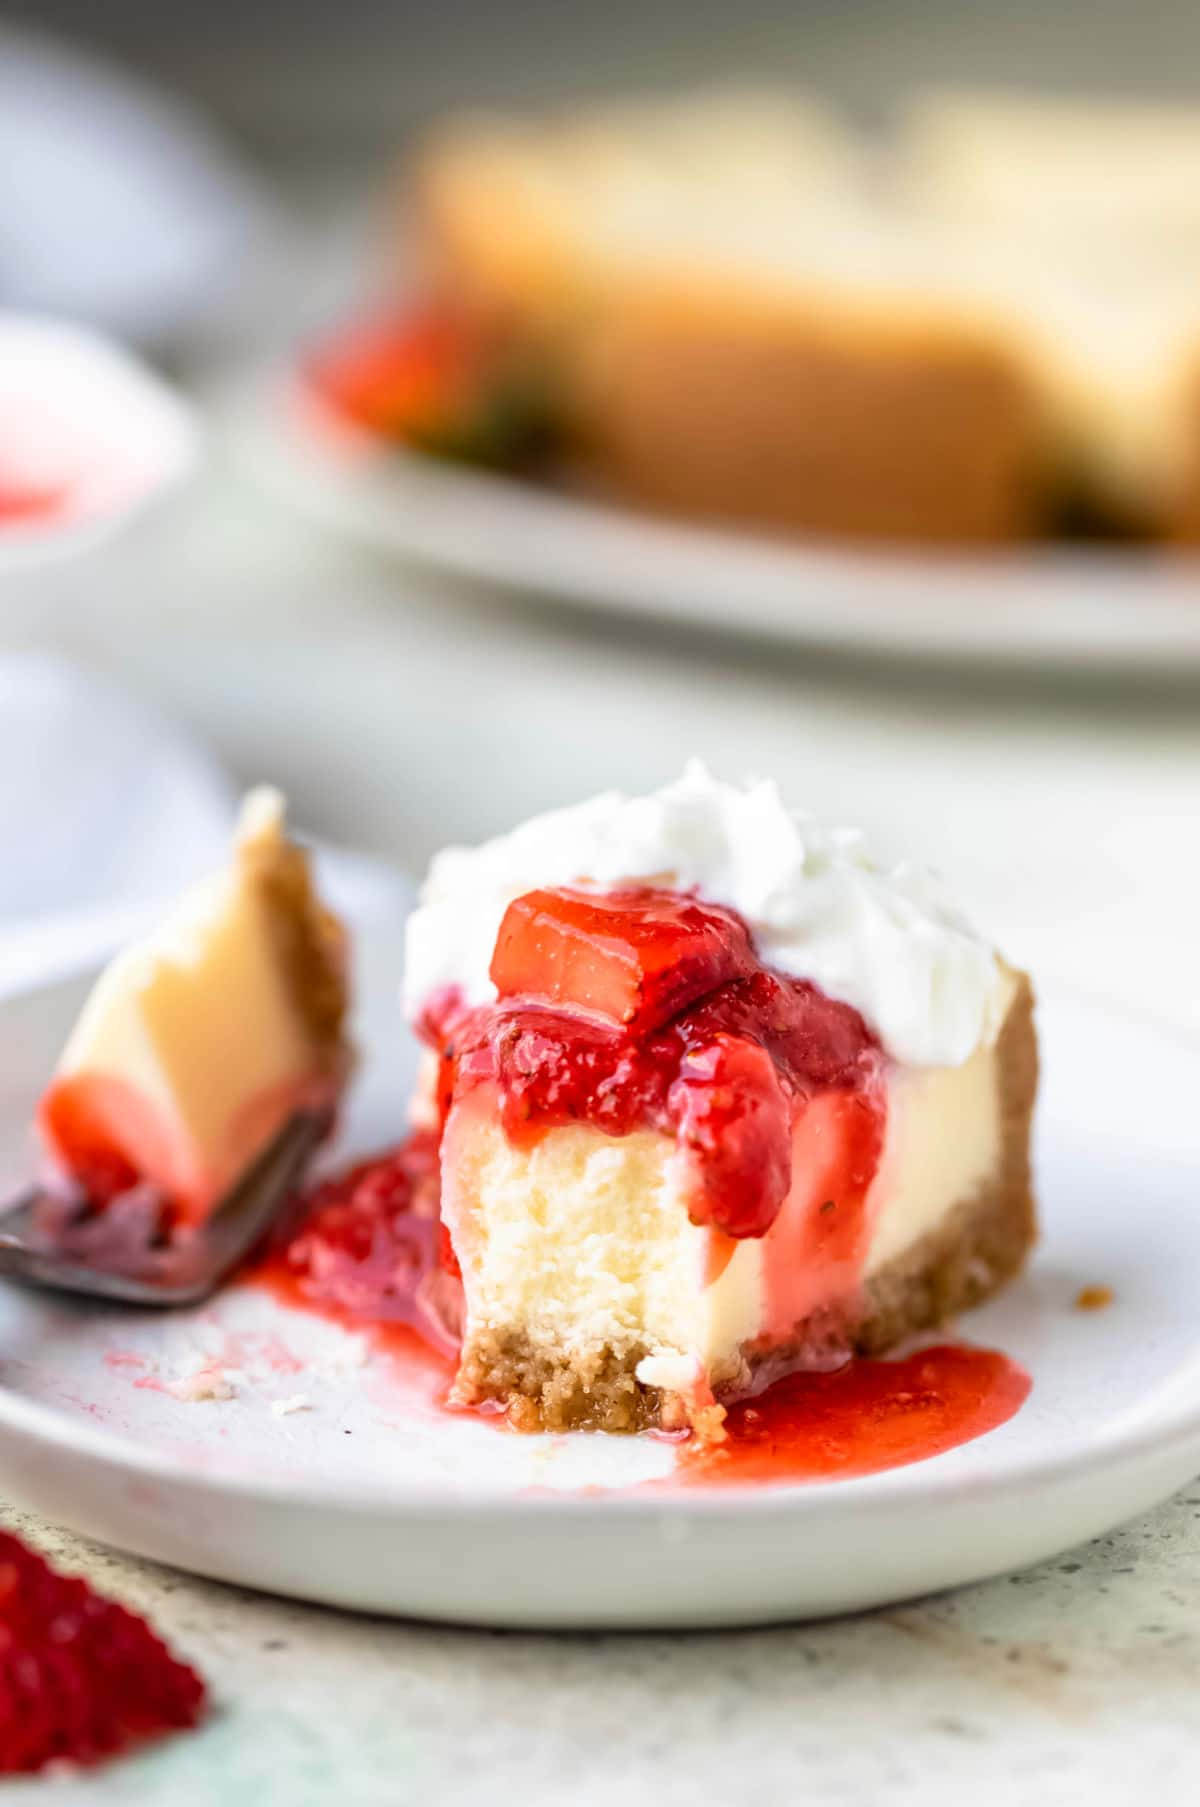 Strawberry topping on cheesecake with a bite out of the cheesecake.